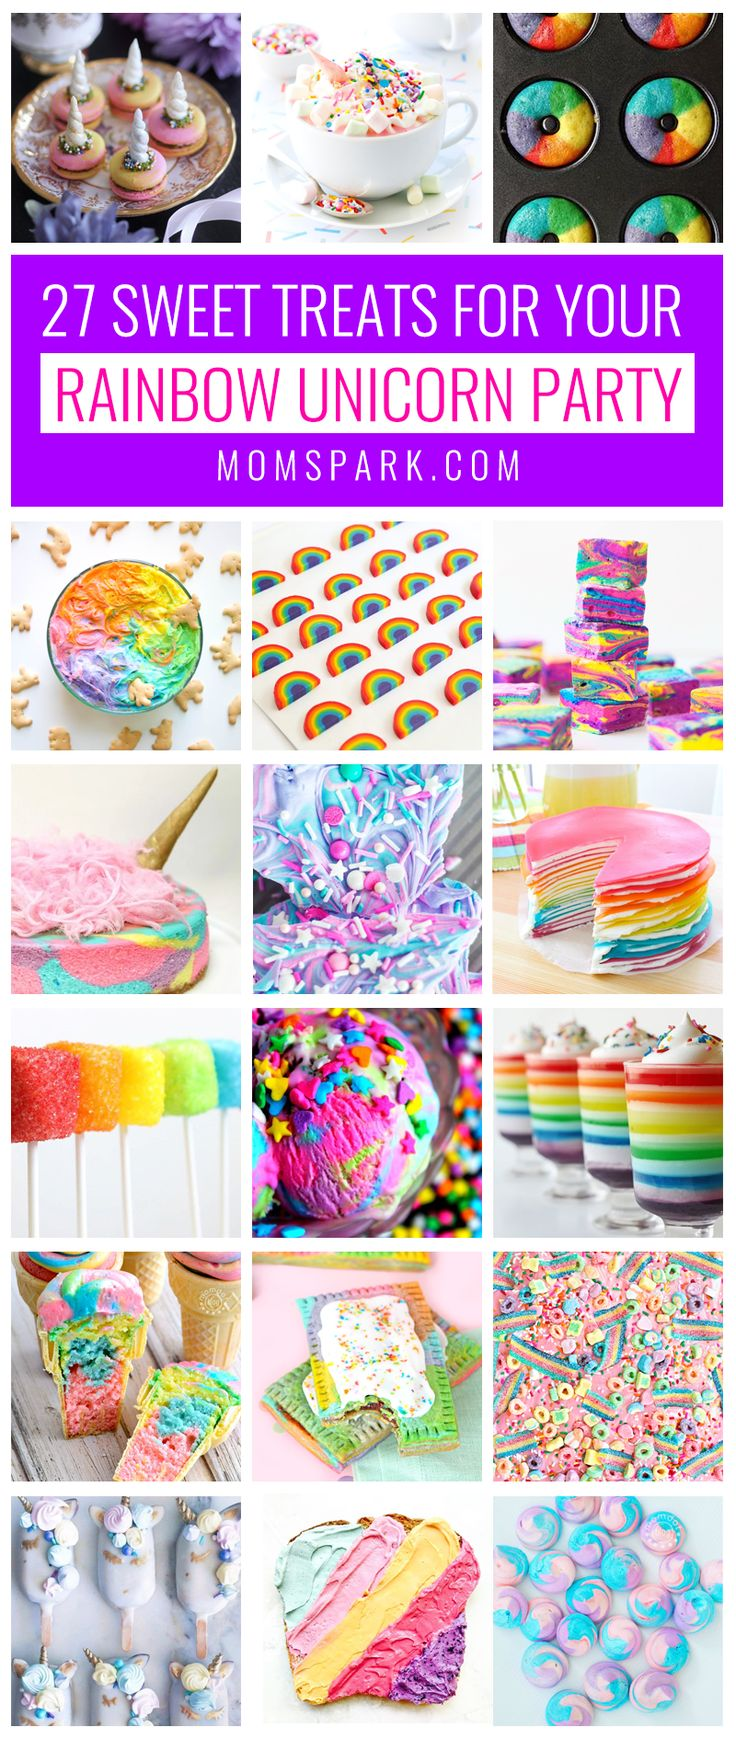 27 Sweets & Treats for Your Rainbow Unicorn Party | Mom Spark - A Trendy Blog for Moms - Mom Blogger #unicornparty #raindowpartytheme #unicornpartyideas